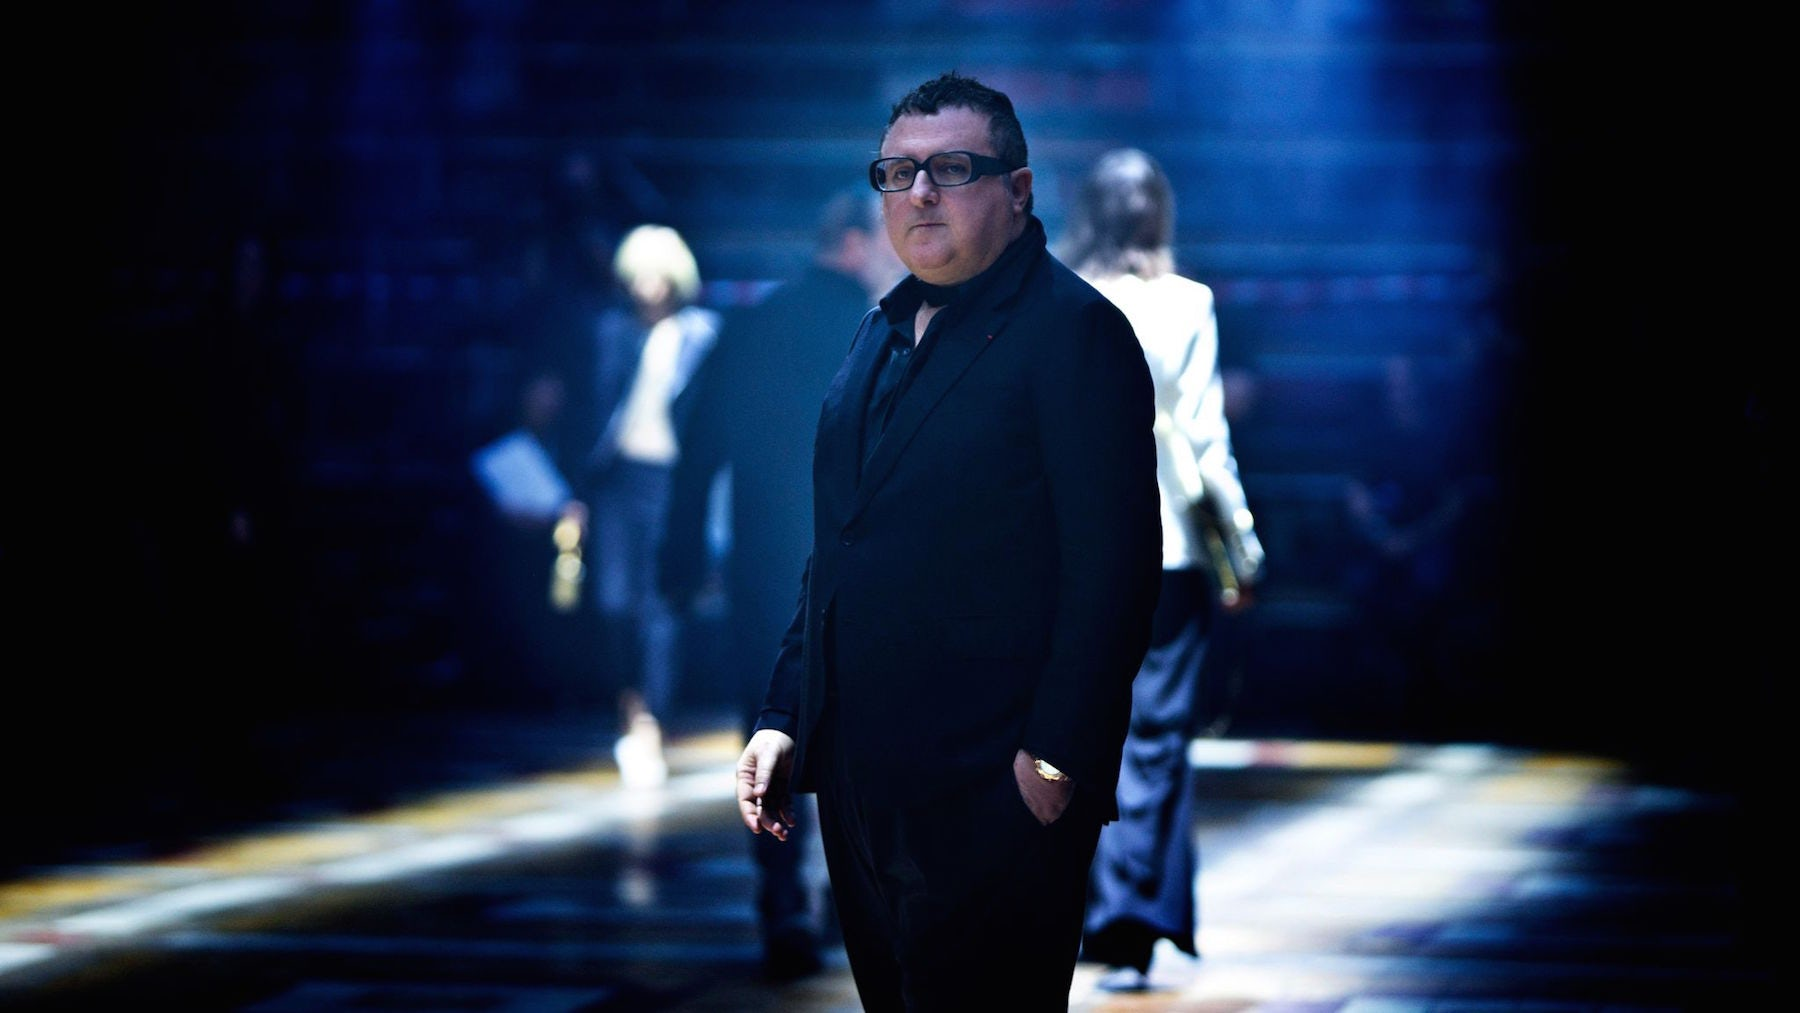 Power Moves | Elbaz Exits Lanvin, LVMH's Management Shuffle, Green to Chanel